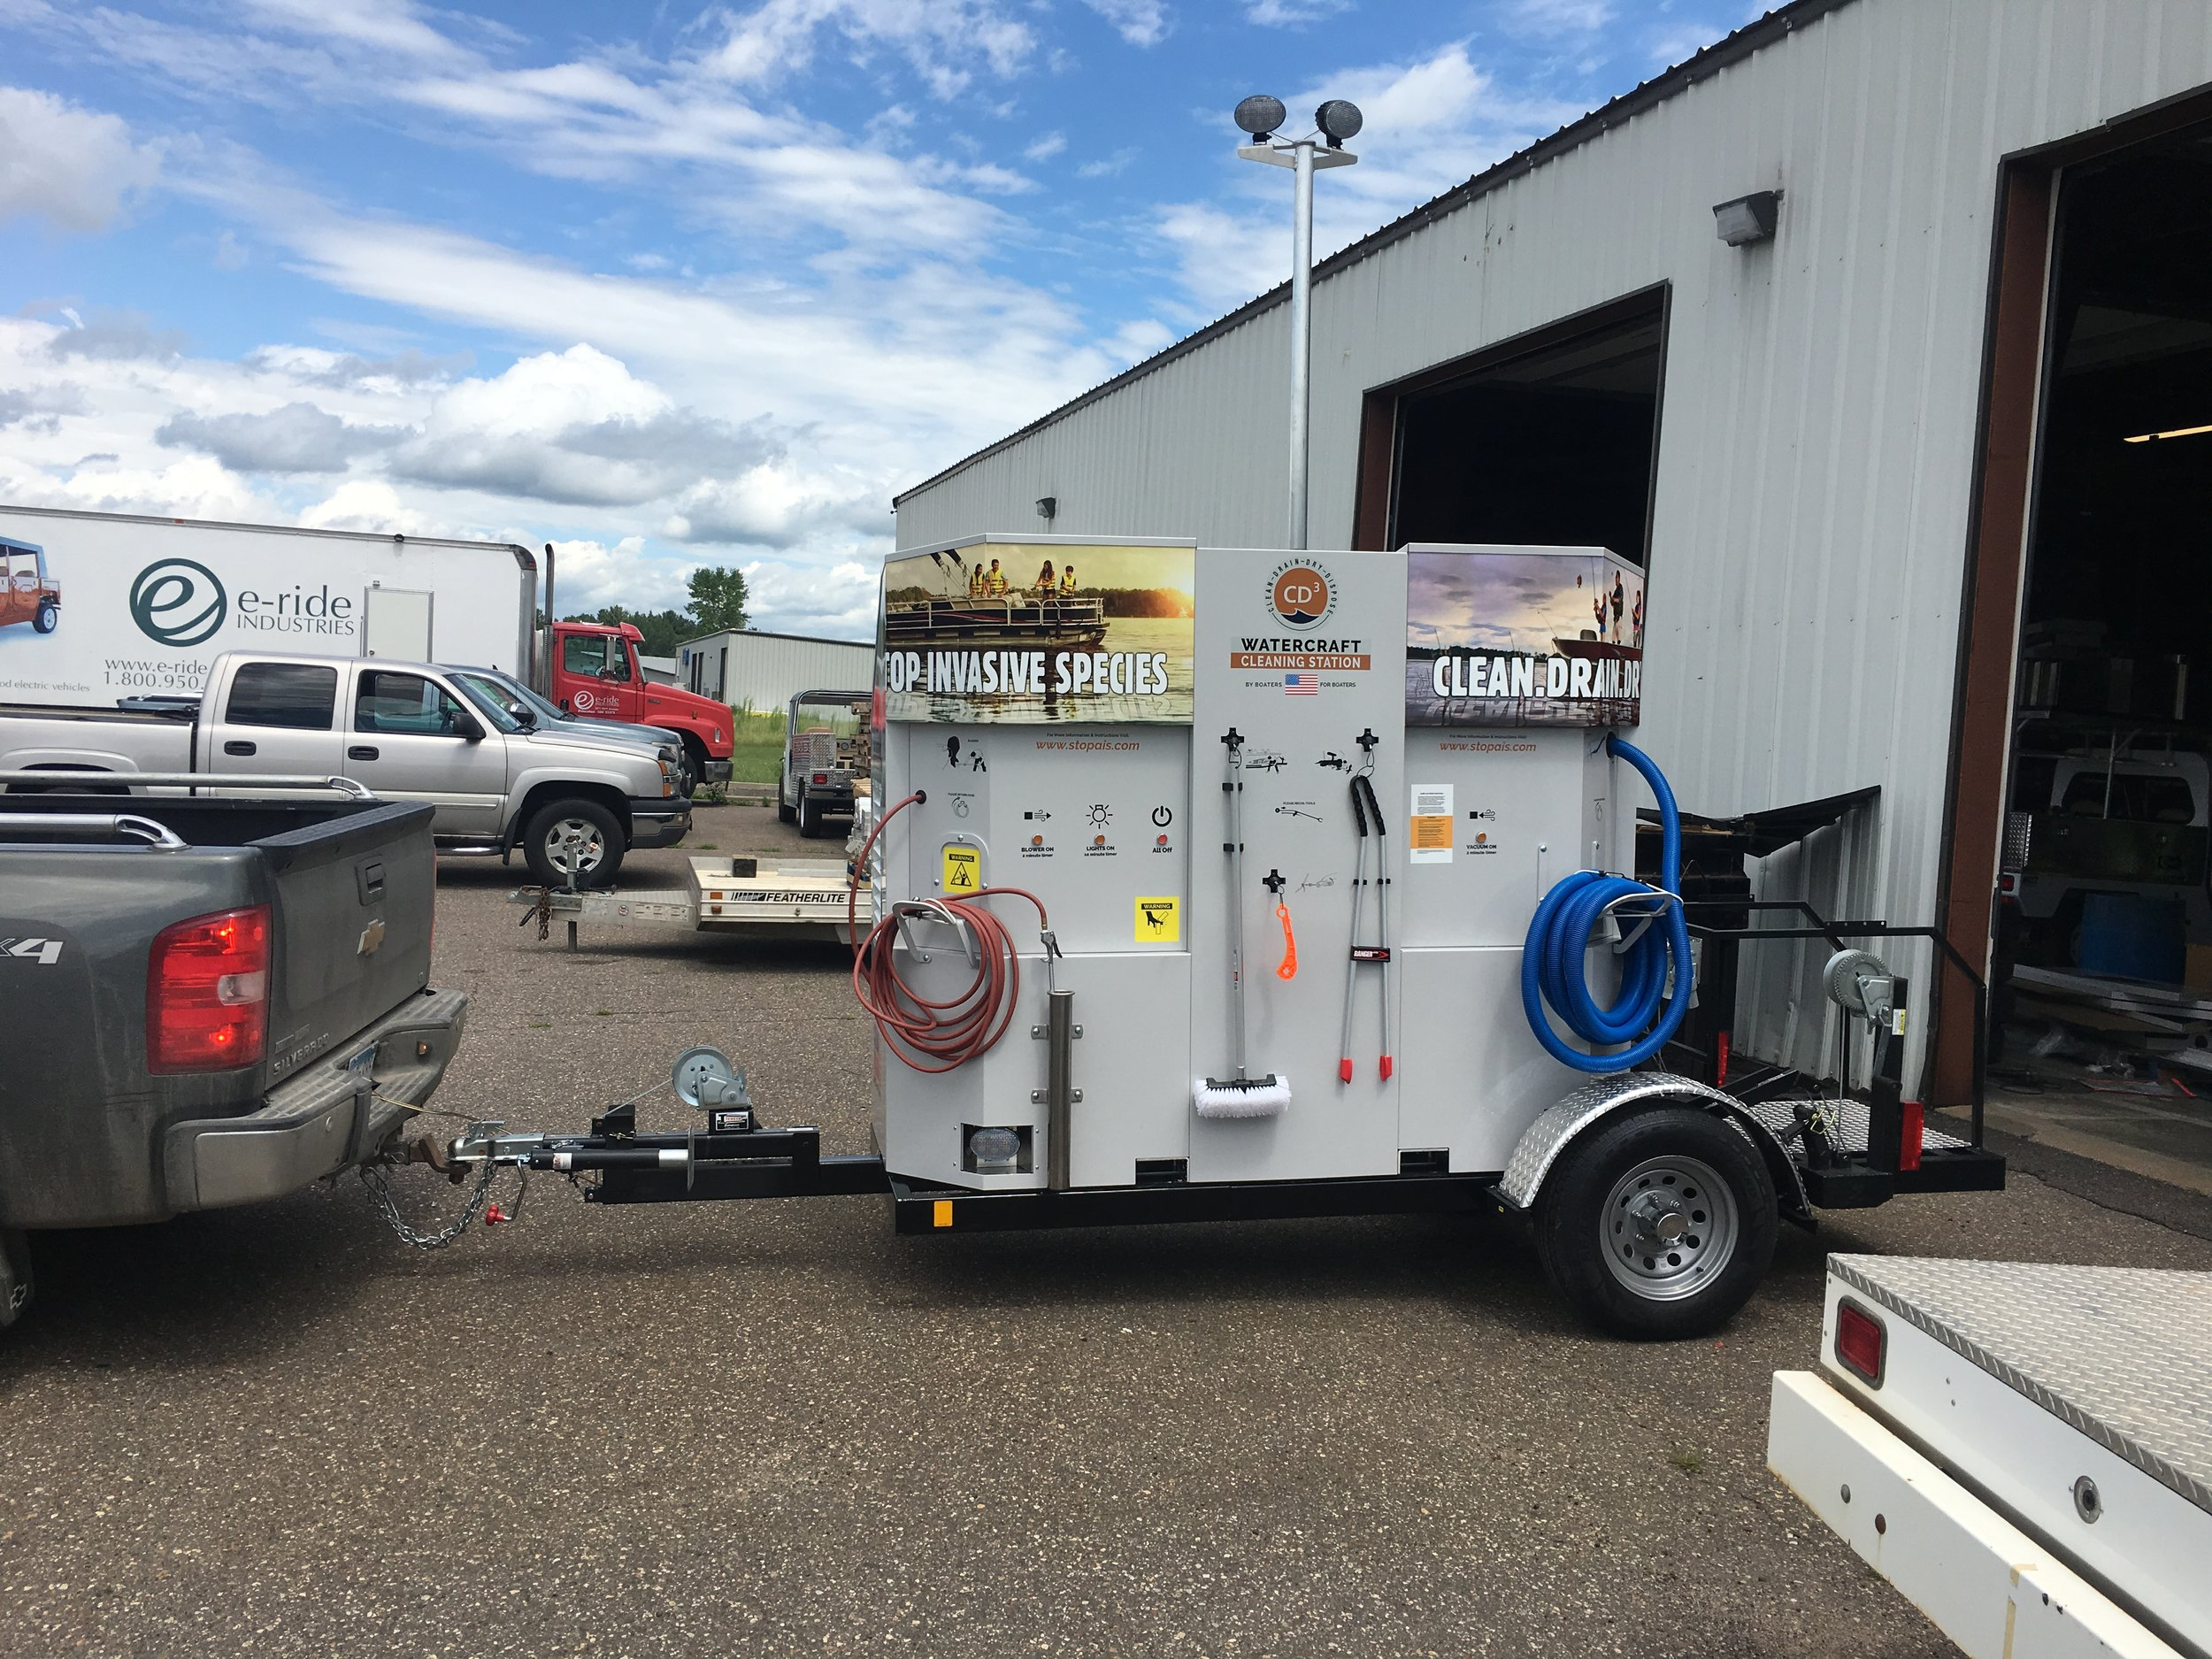 Introducing CD3's new trailered station. Our battery powered CD3 Wayside Unit can now be installed on a trailer. Drop 'em off, clean 'em up, pick 'em up, charge 'em up...CD3. Contact us  here  if you'd like to learn more.